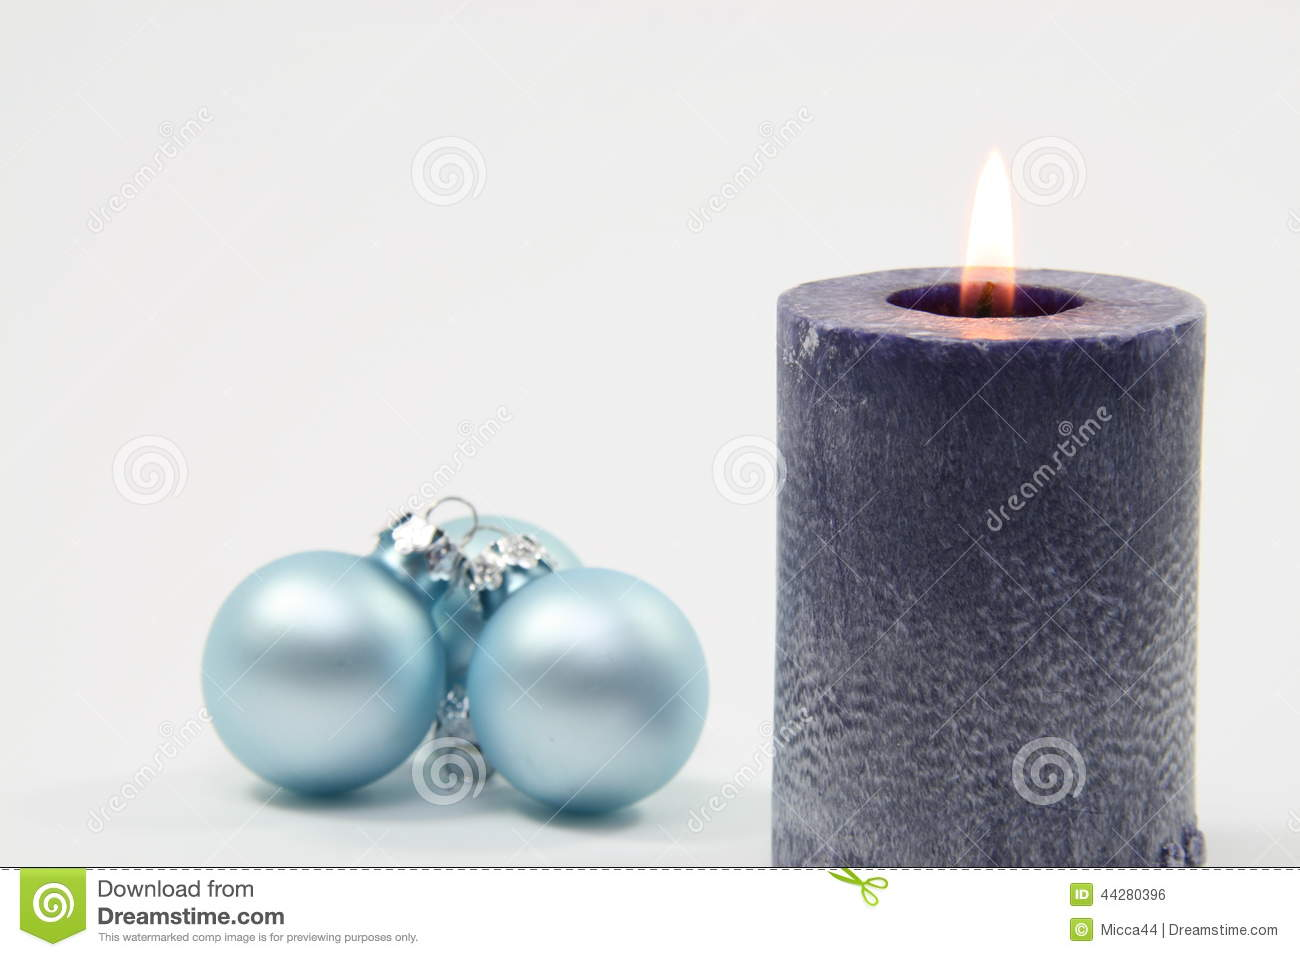 Blue Candle And White Background Stock Photo - Image of flame ... for Blue Candle White Background  585ifm